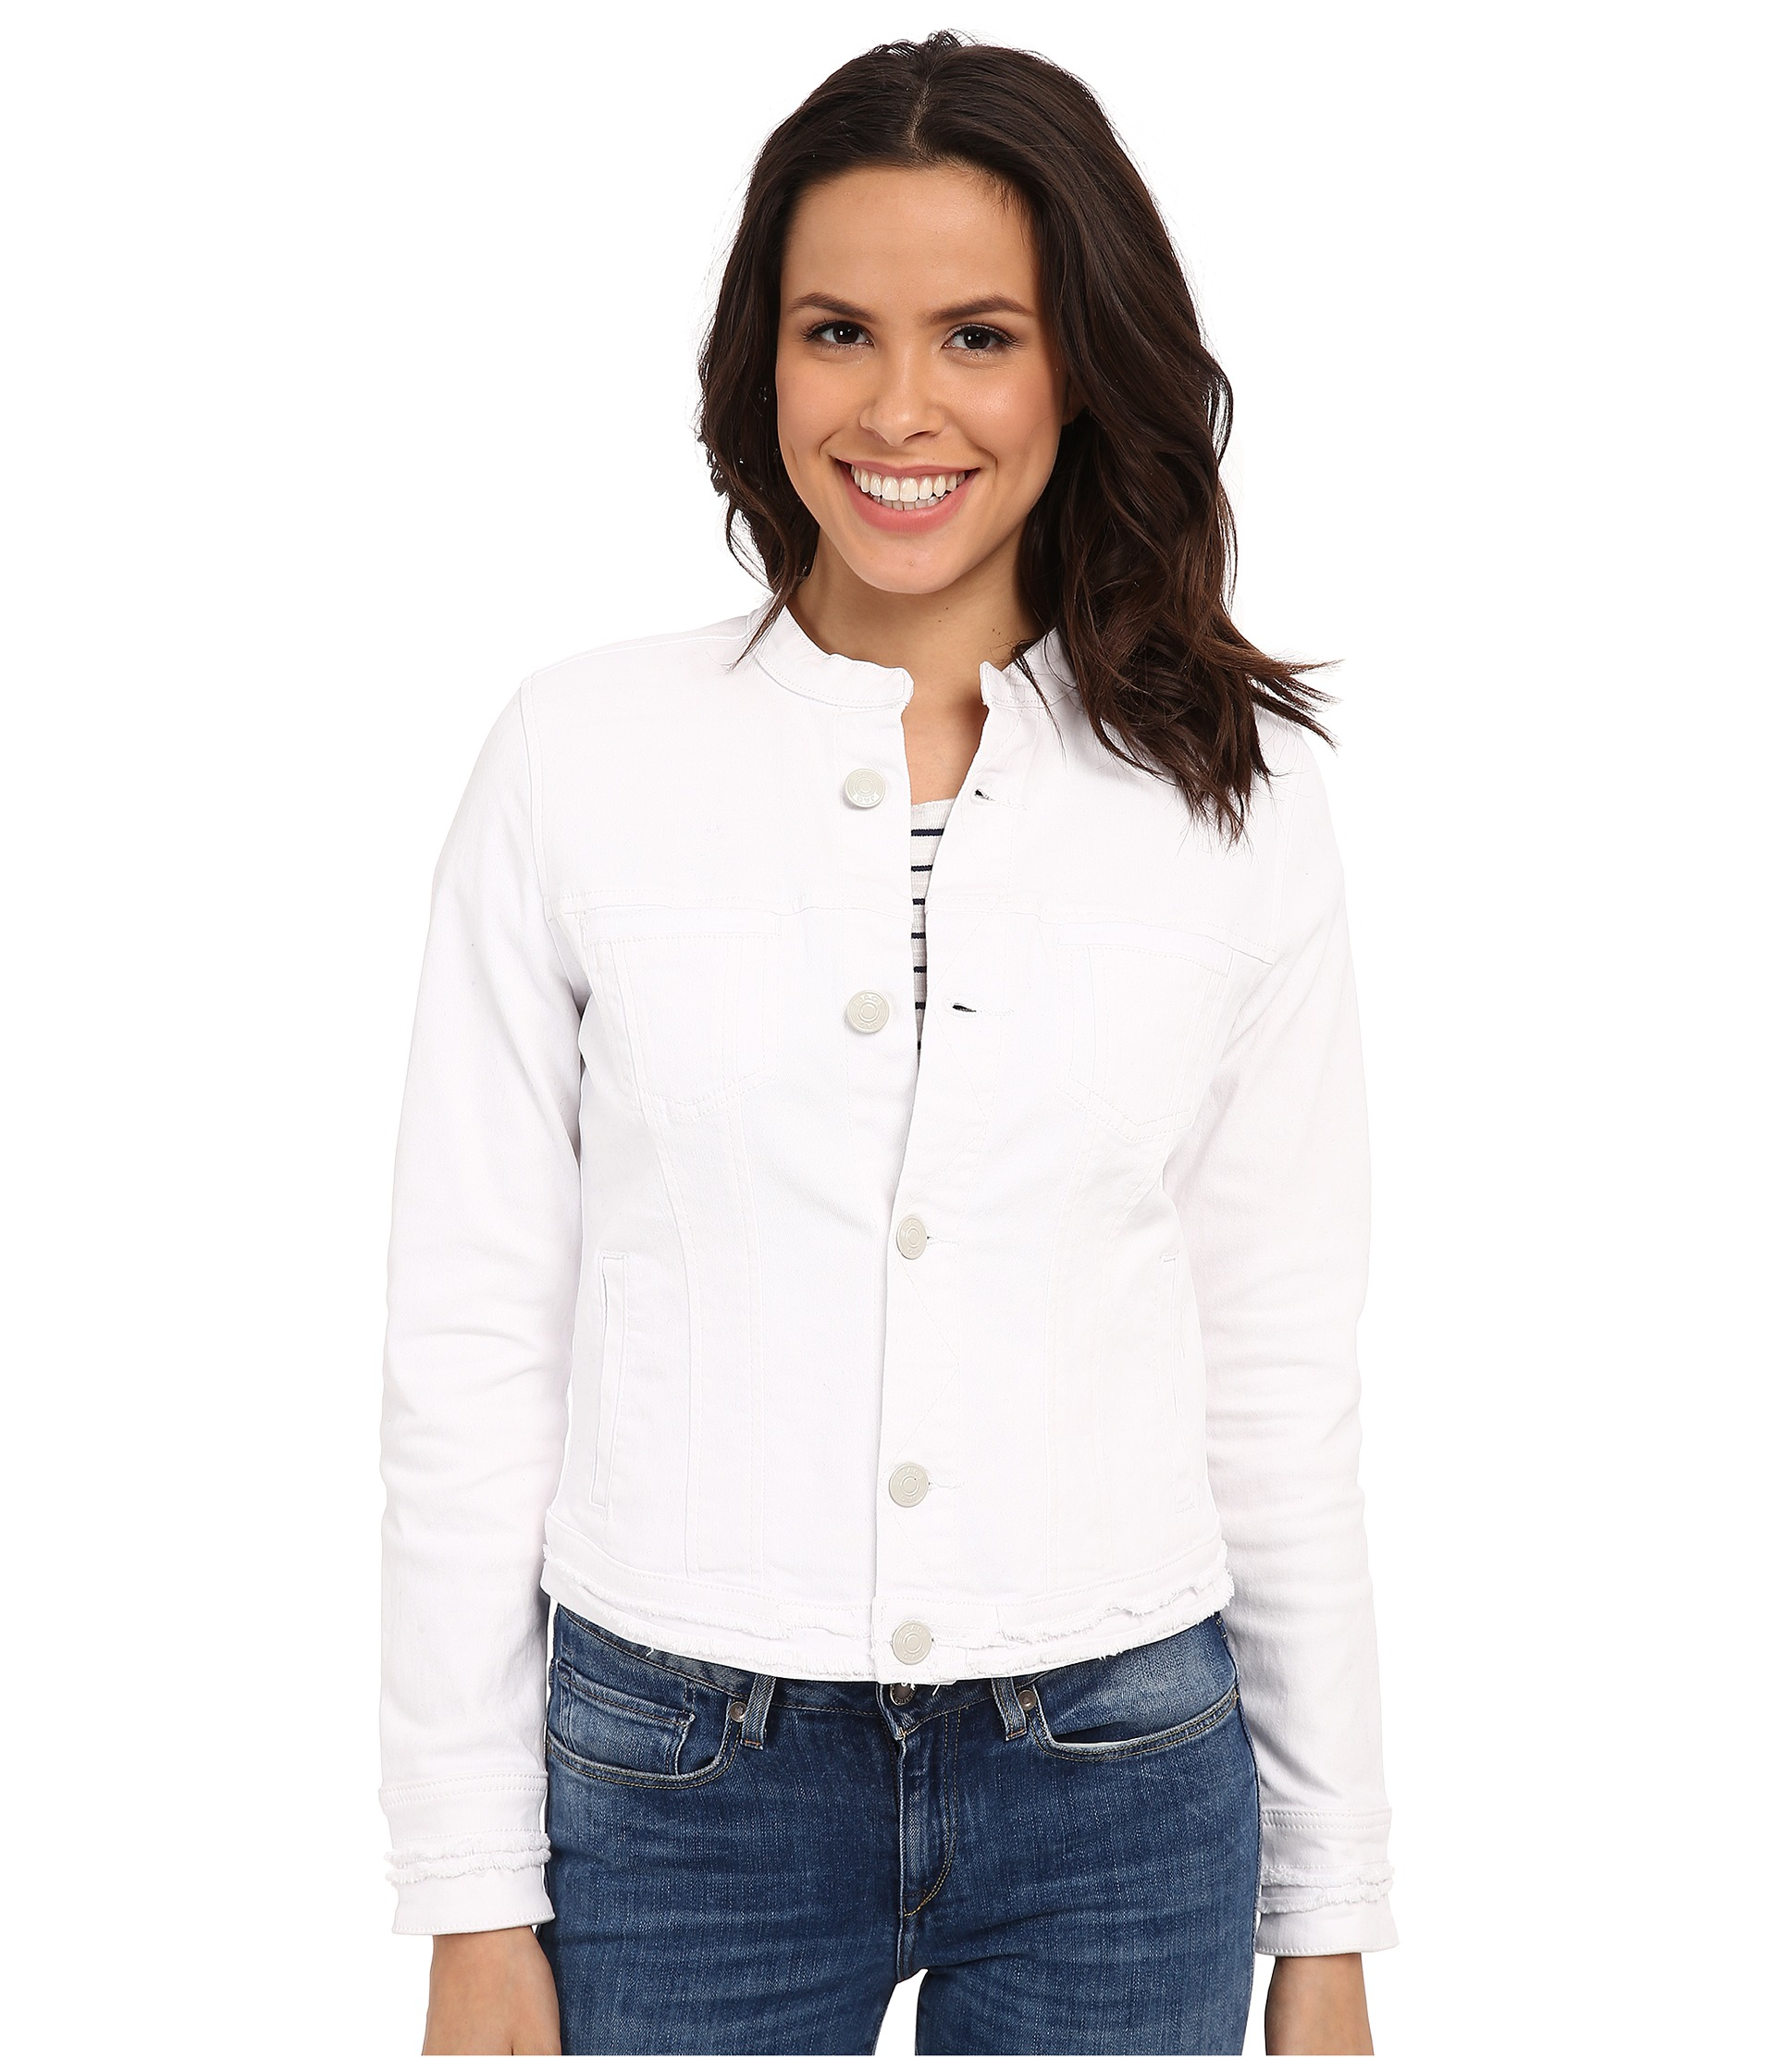 Jag Jeans Dixie Jacket in White Denim White - Zappos.com Free Shipping BOTH Ways